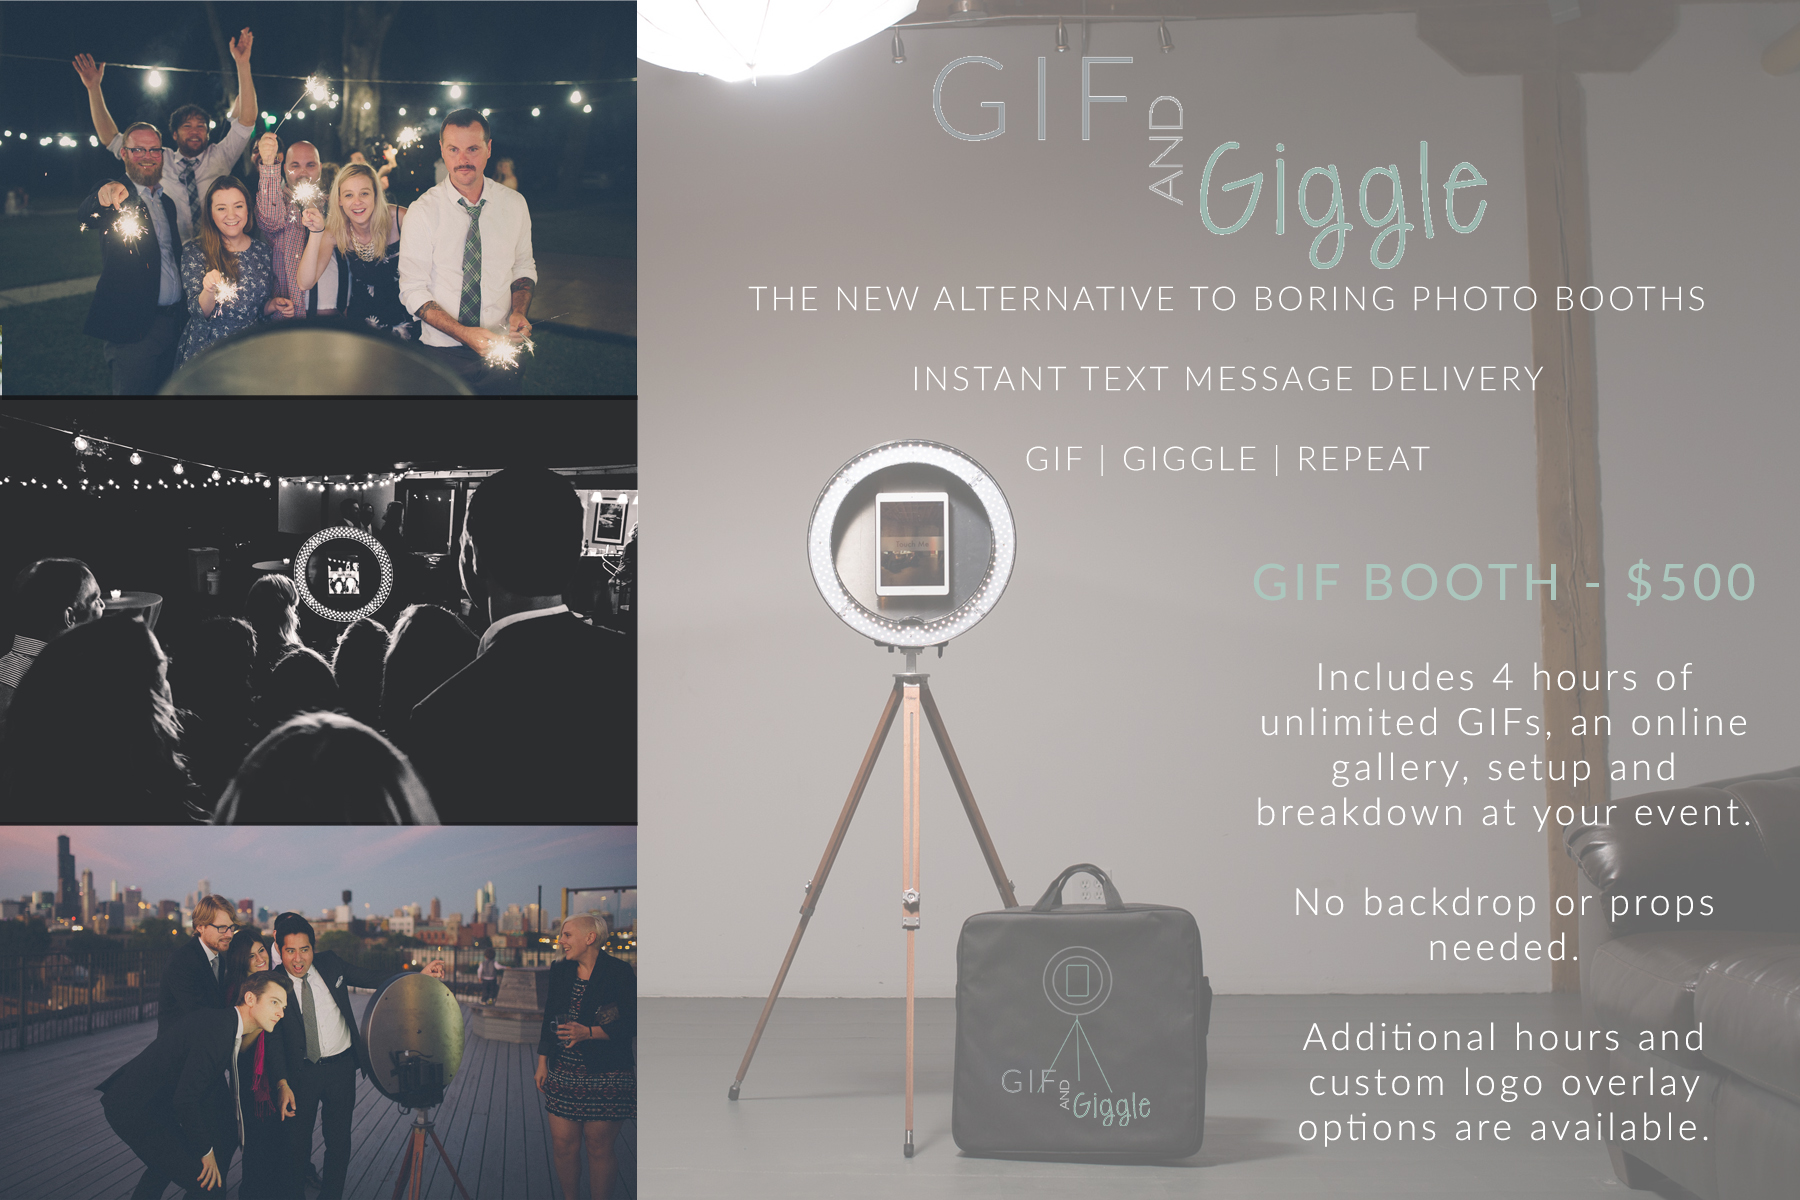 About the GIF and Giggle GIF Booth